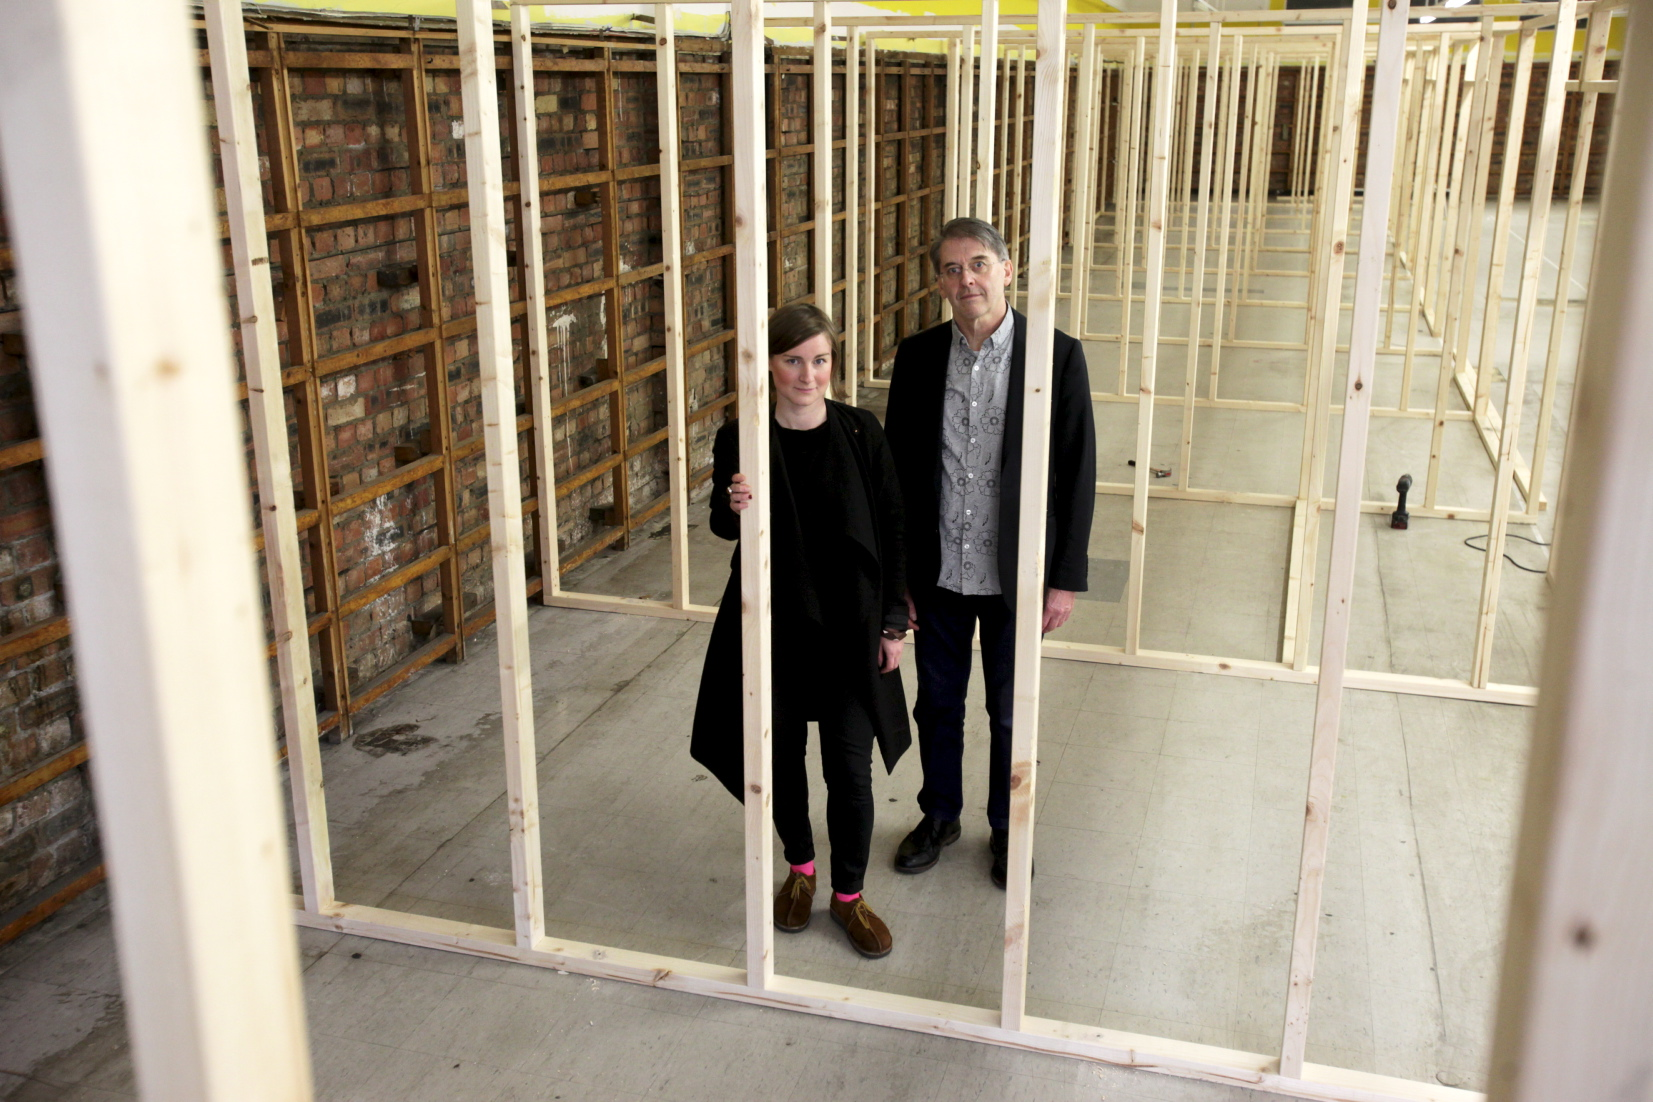 Charlie Gregory, Director, The NewBridge Project, (left) with David Butler, Senior Lecturer in Fine Art at Newcastle University at The NewBridge Project : Gateshead (Image: Mike Urwin)